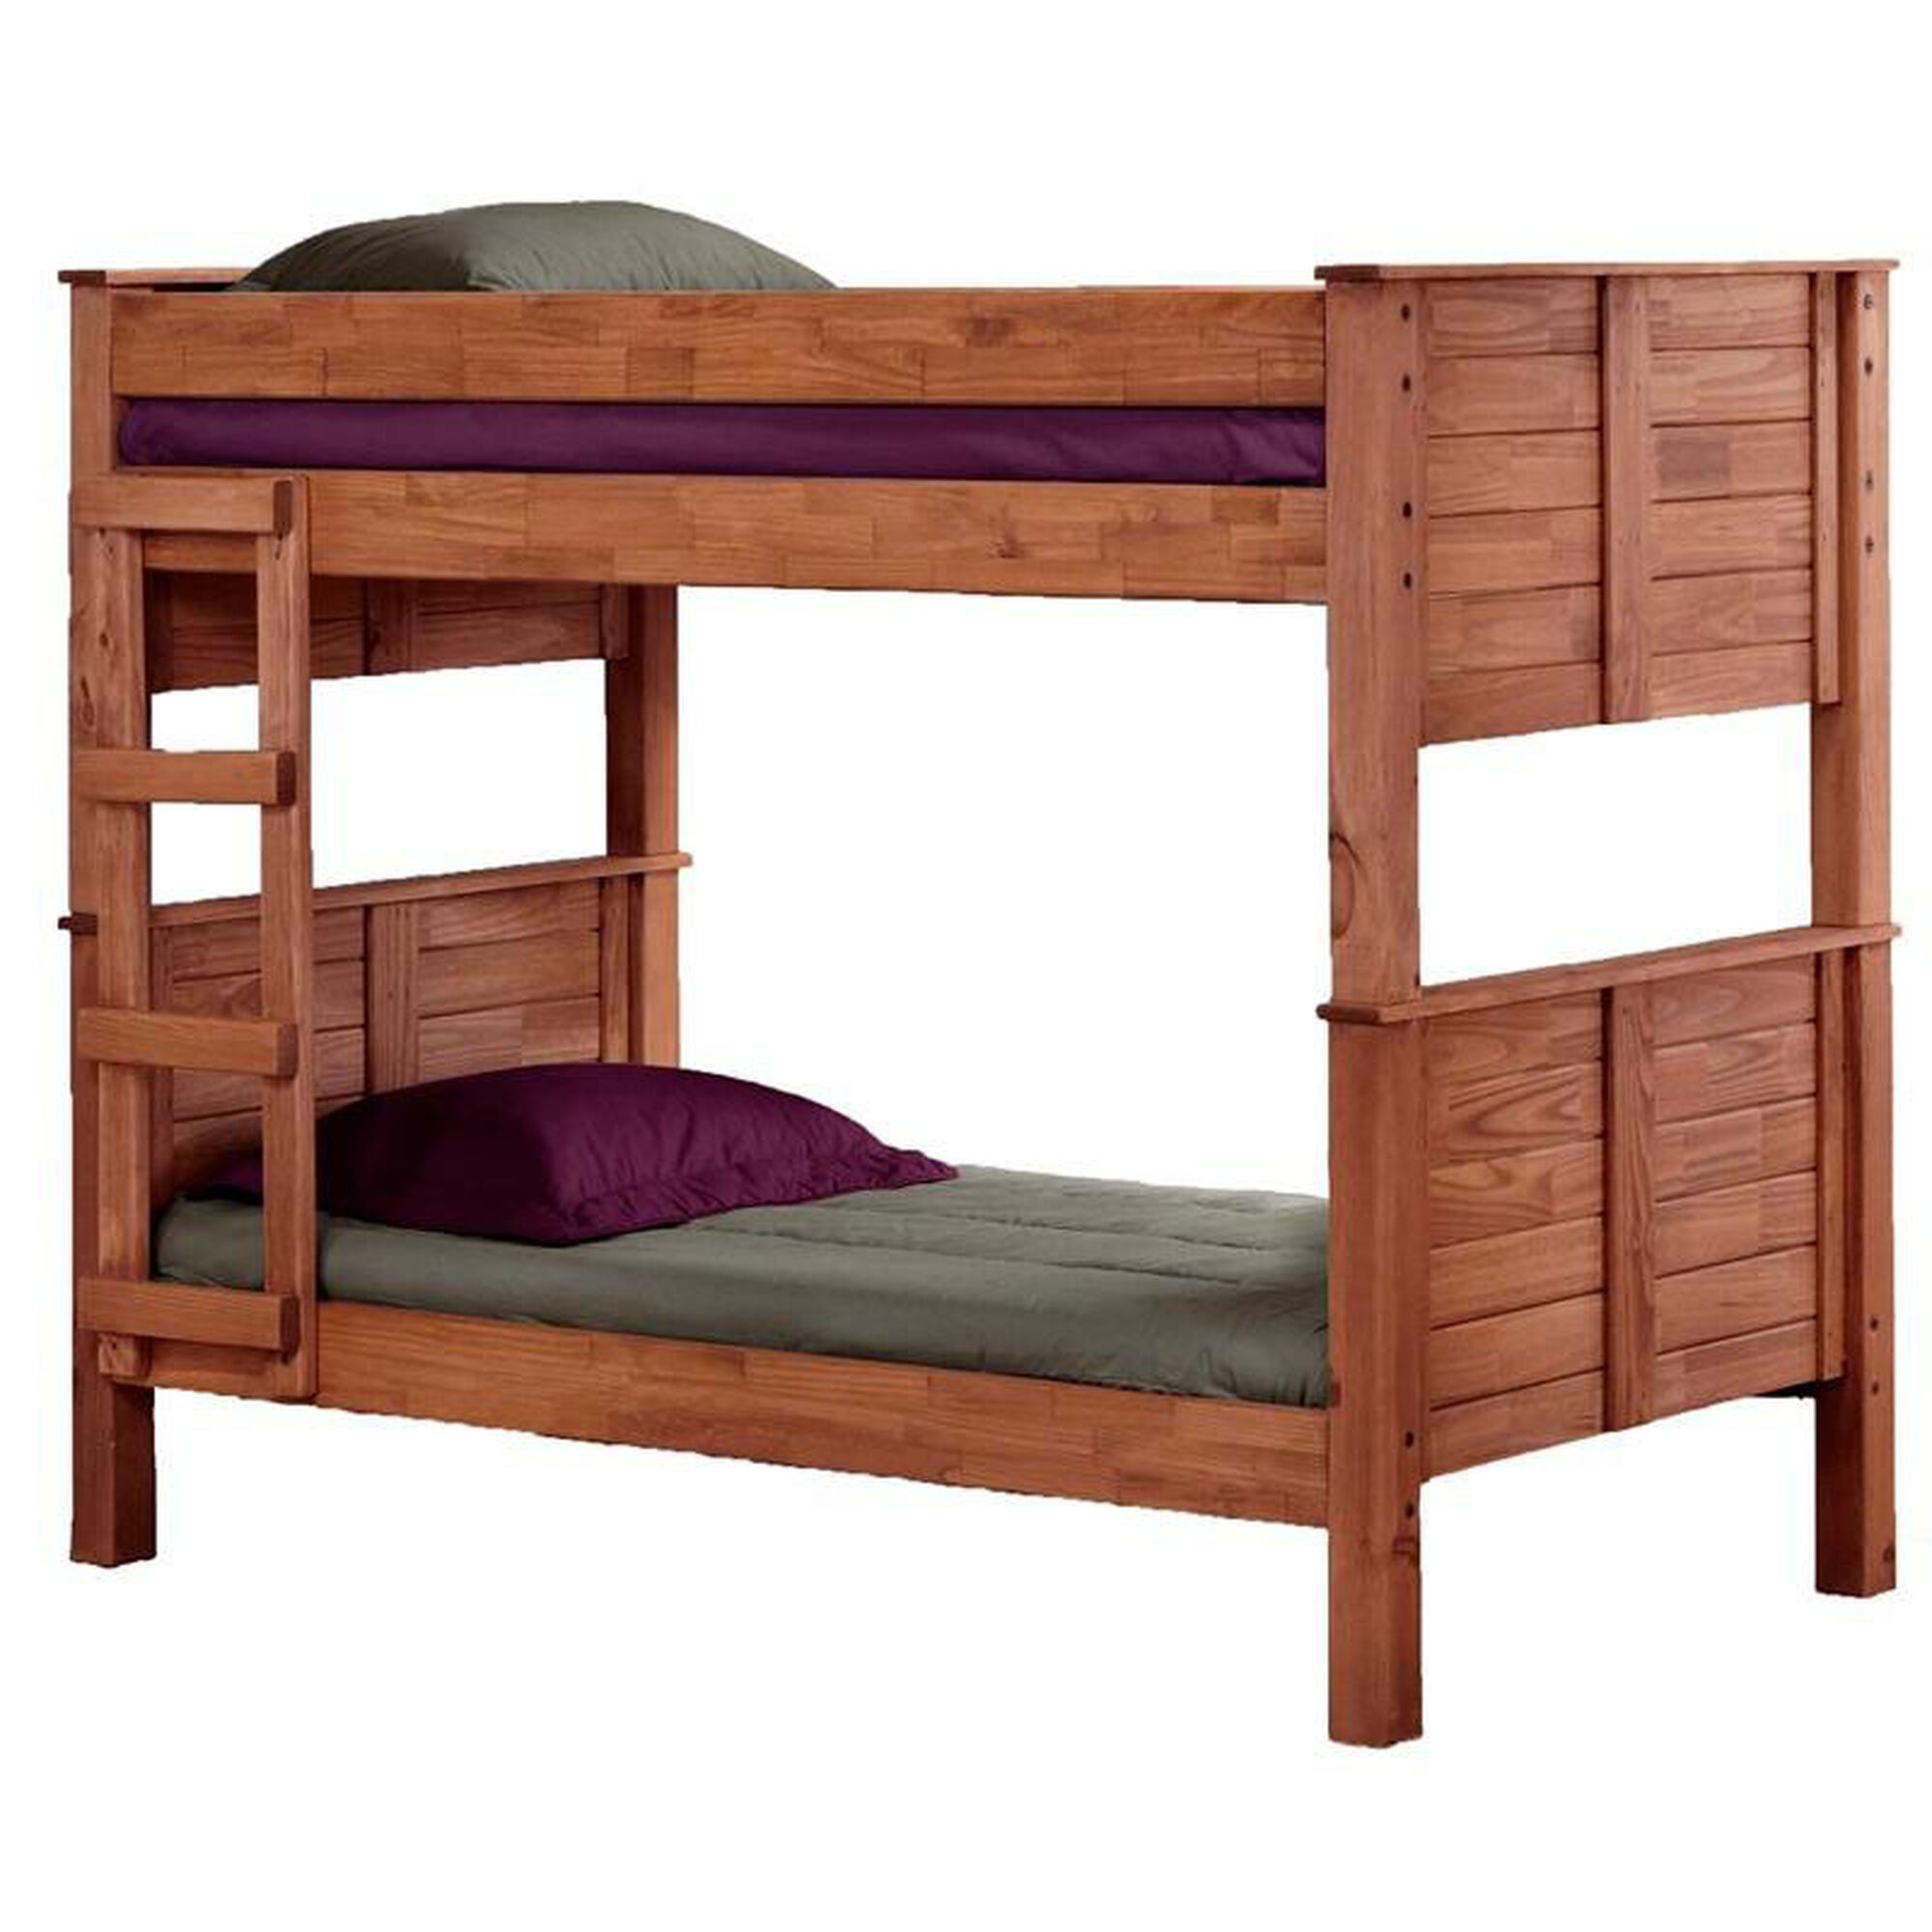 Chelsea home furniture rustic style solid pine post bunk for Home furnishing sites